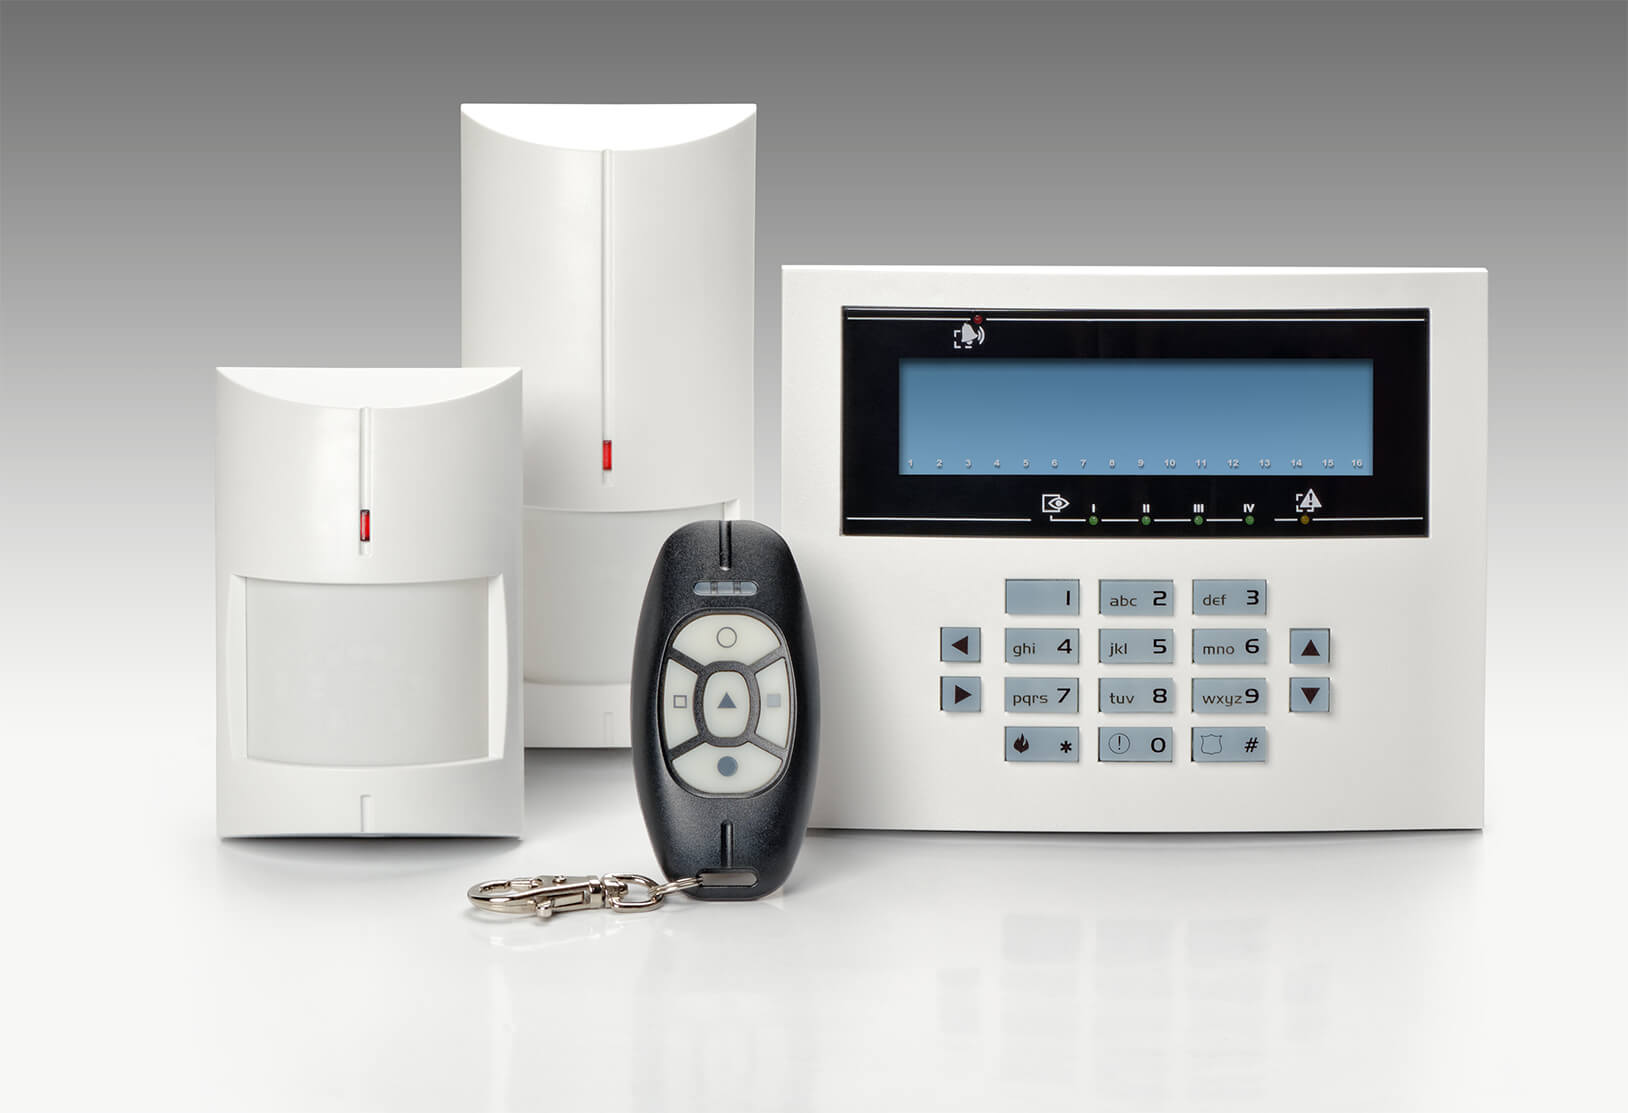 Business & Residential NACOSS Approved Burglar Alarms In Stepney E4 - Local Stepney E4 security company.Call 02078872244 - Dedicated to Safety & Security. Companies, shops and homes ..